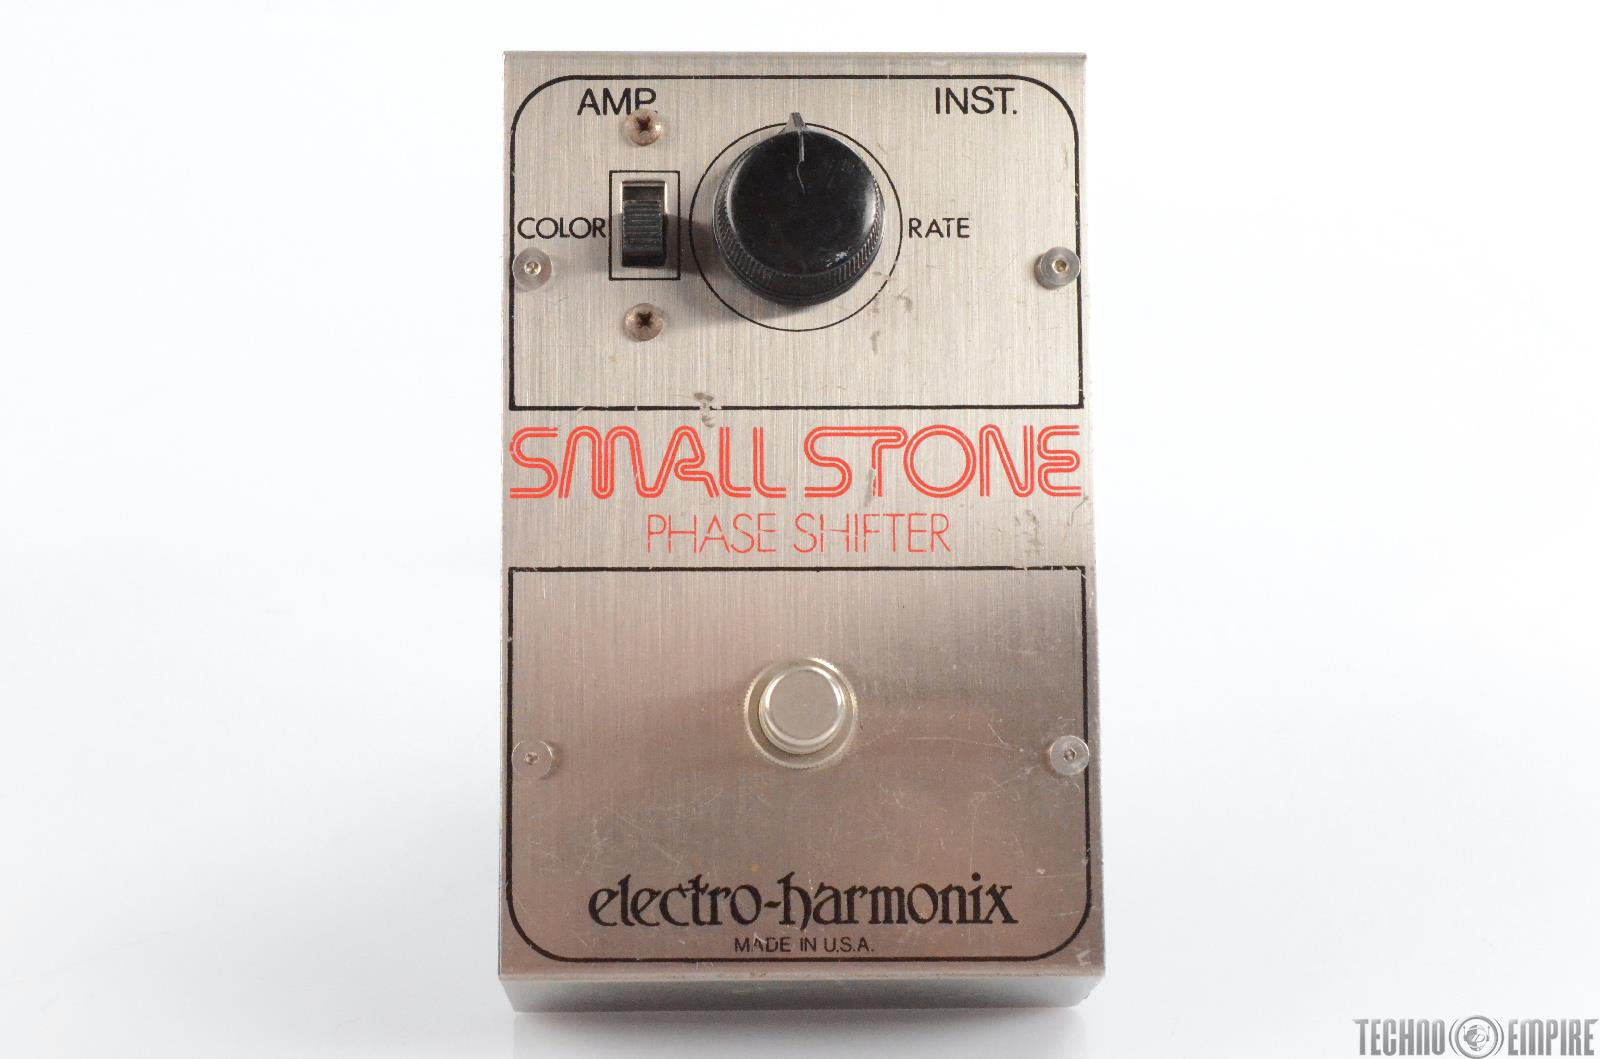 Electro-Harmonix V1 Small Stone Phase Shifter Pedal Owned by Matt Hyde #30211